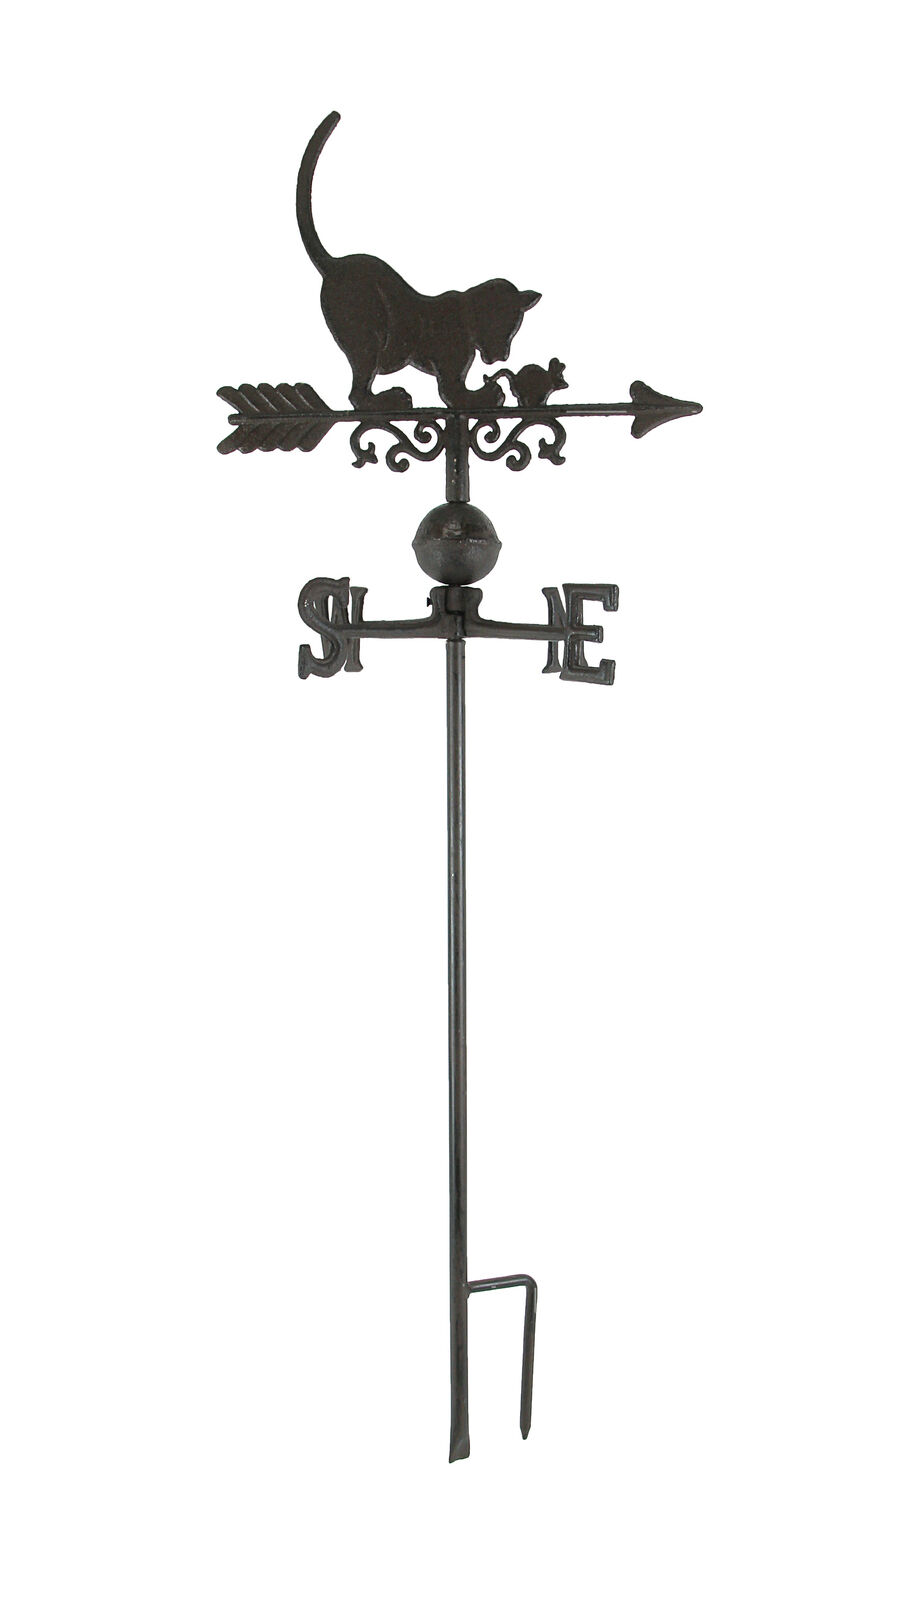 Cast Iron Cat and Mouse Weathervane Lawn Decoration Garden Stake